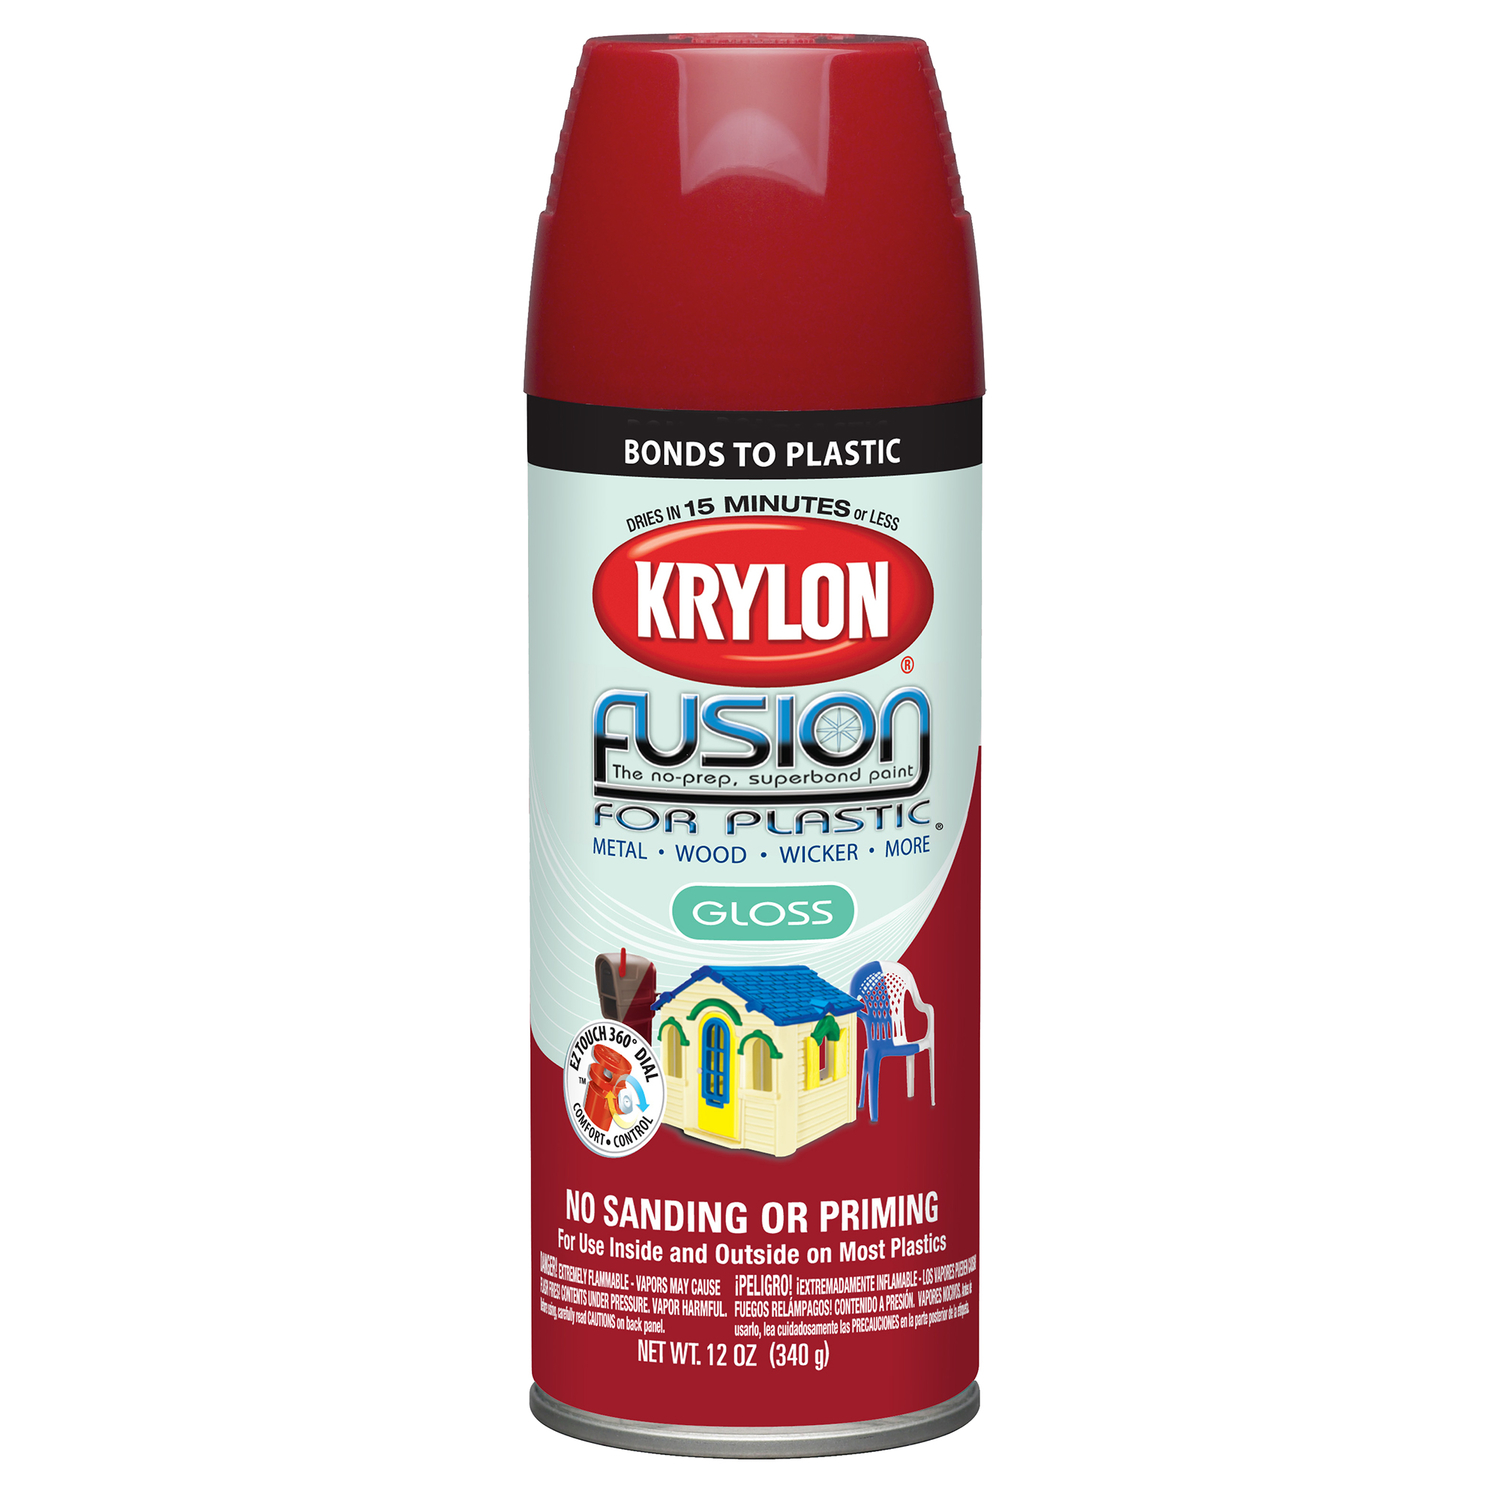 Krylon  Gloss  Fusion Spray Paint  12 oz. Sun Dried Tomato